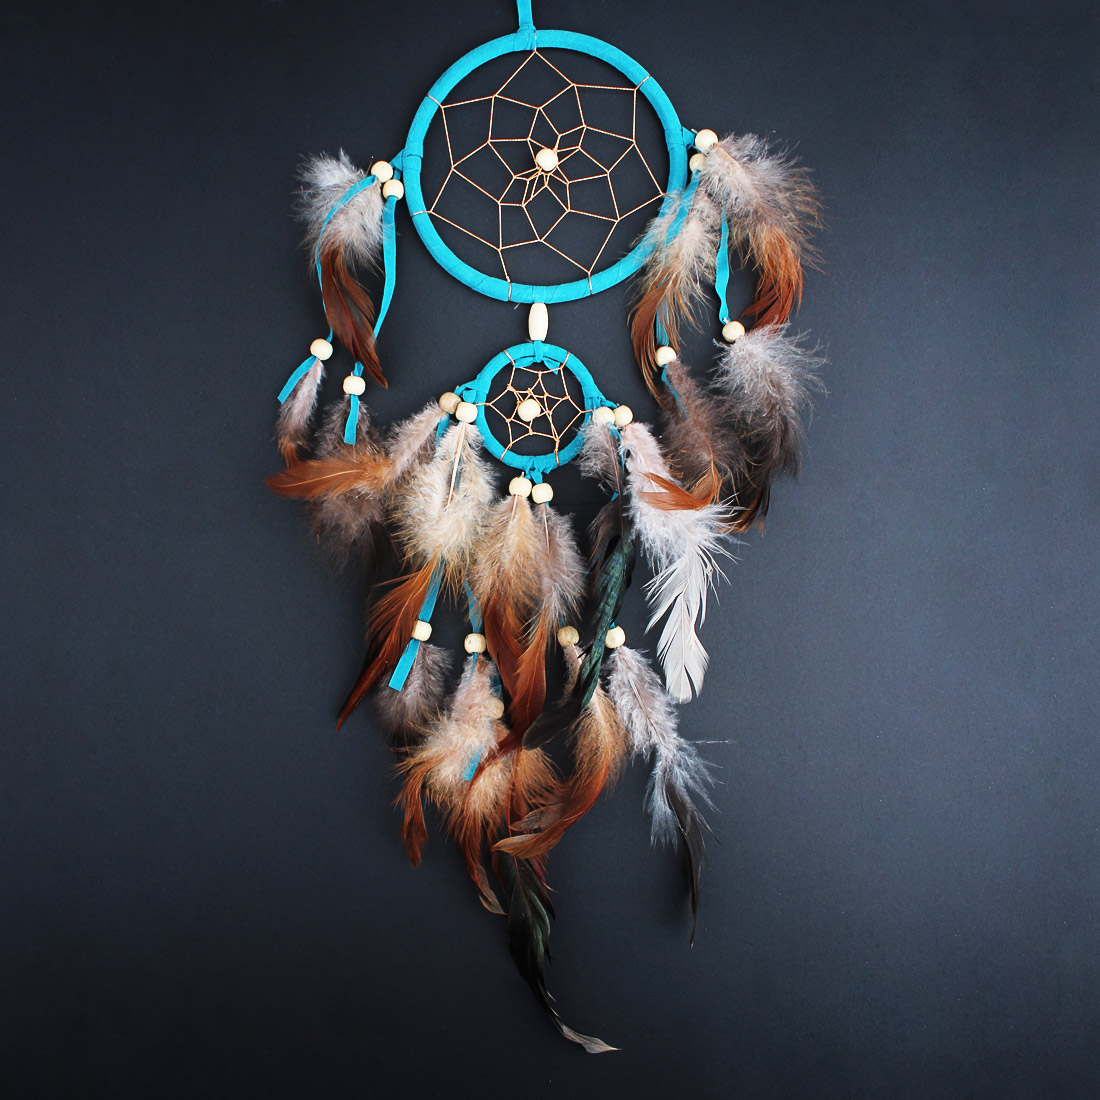 DreamDream Dream Catcher Handmade Decoration for Wall Car Home Decor with Feather Beads, Indian Style, Hanging Ornament,11cm/4.33inch Diameter,45cm/17.72inch Long  - Blue